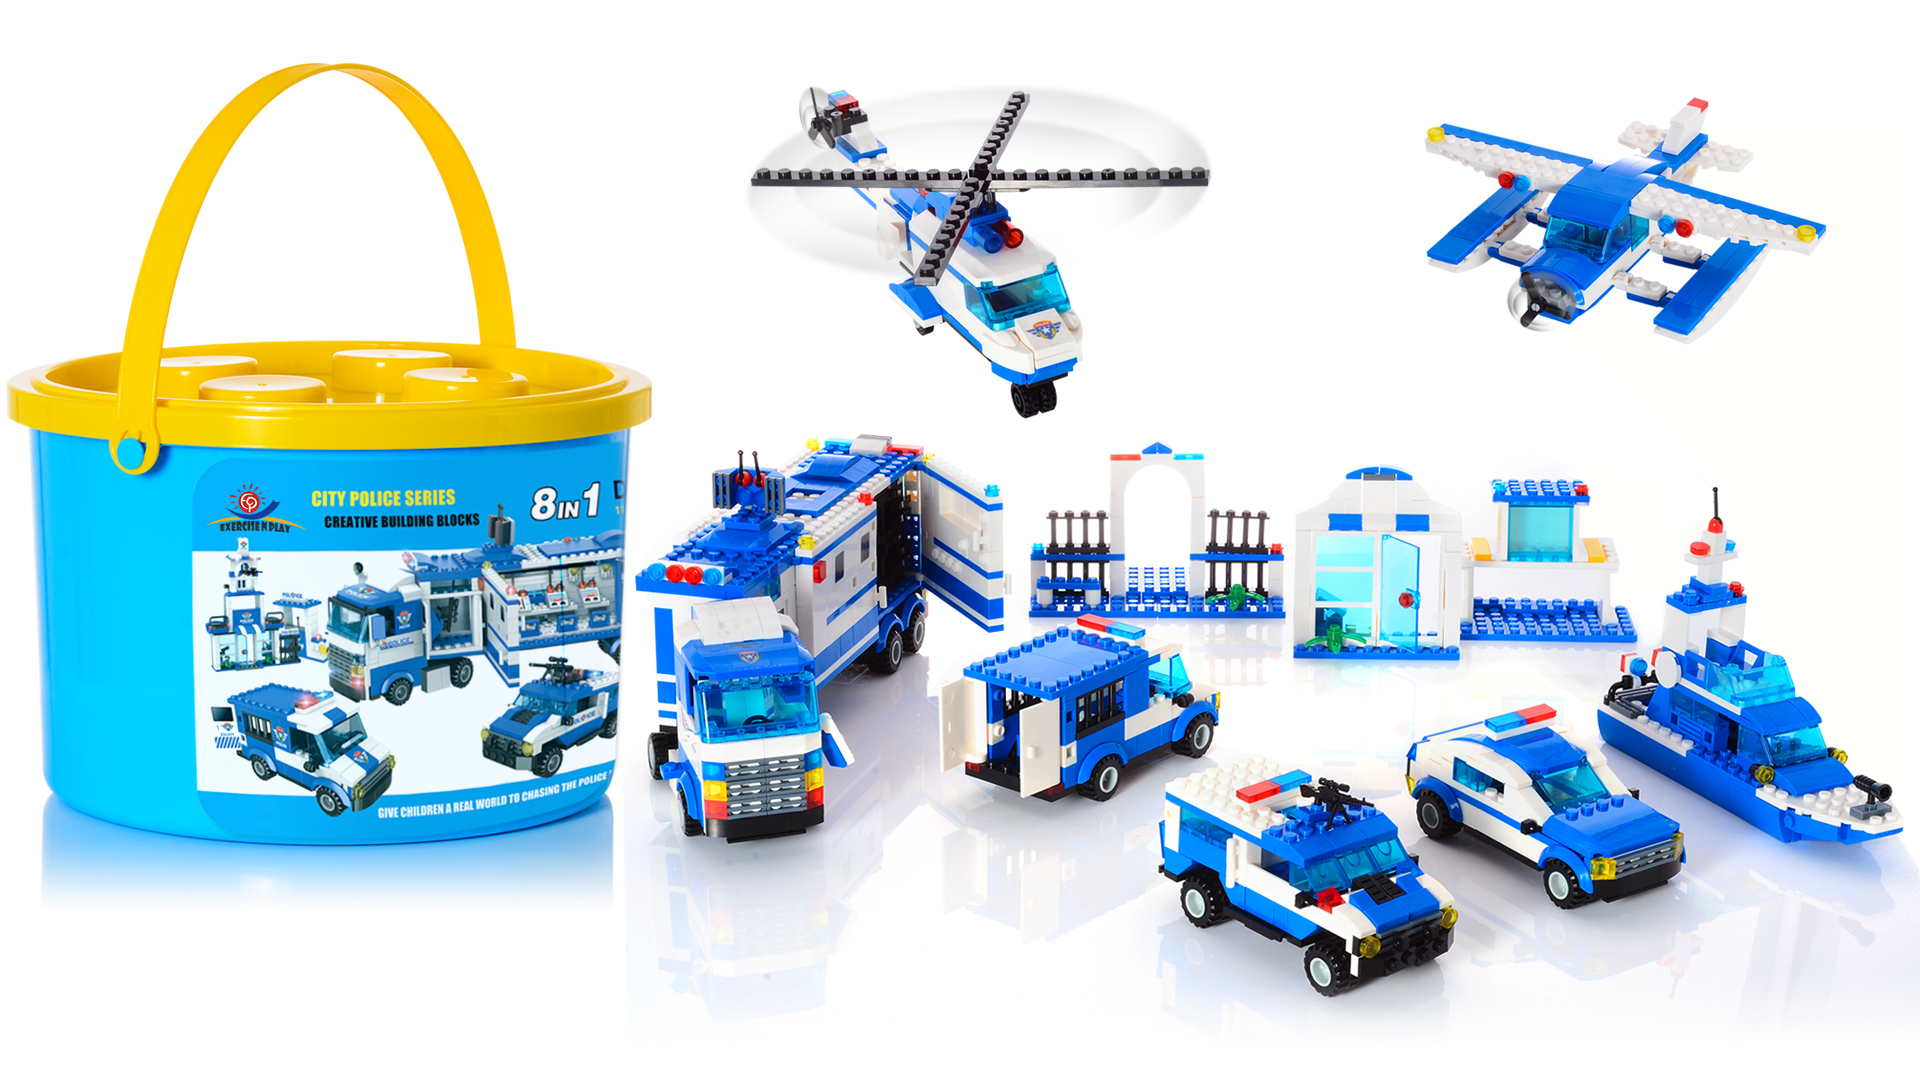 City Police, City Station Building Sets, 8 in 1 Mobile Command Center Building Bricks Toy with Cop Car & Patrol Vehicles, Storage Box with Baseplates Lid, Present Gift for Kids Boys Girls 6-12